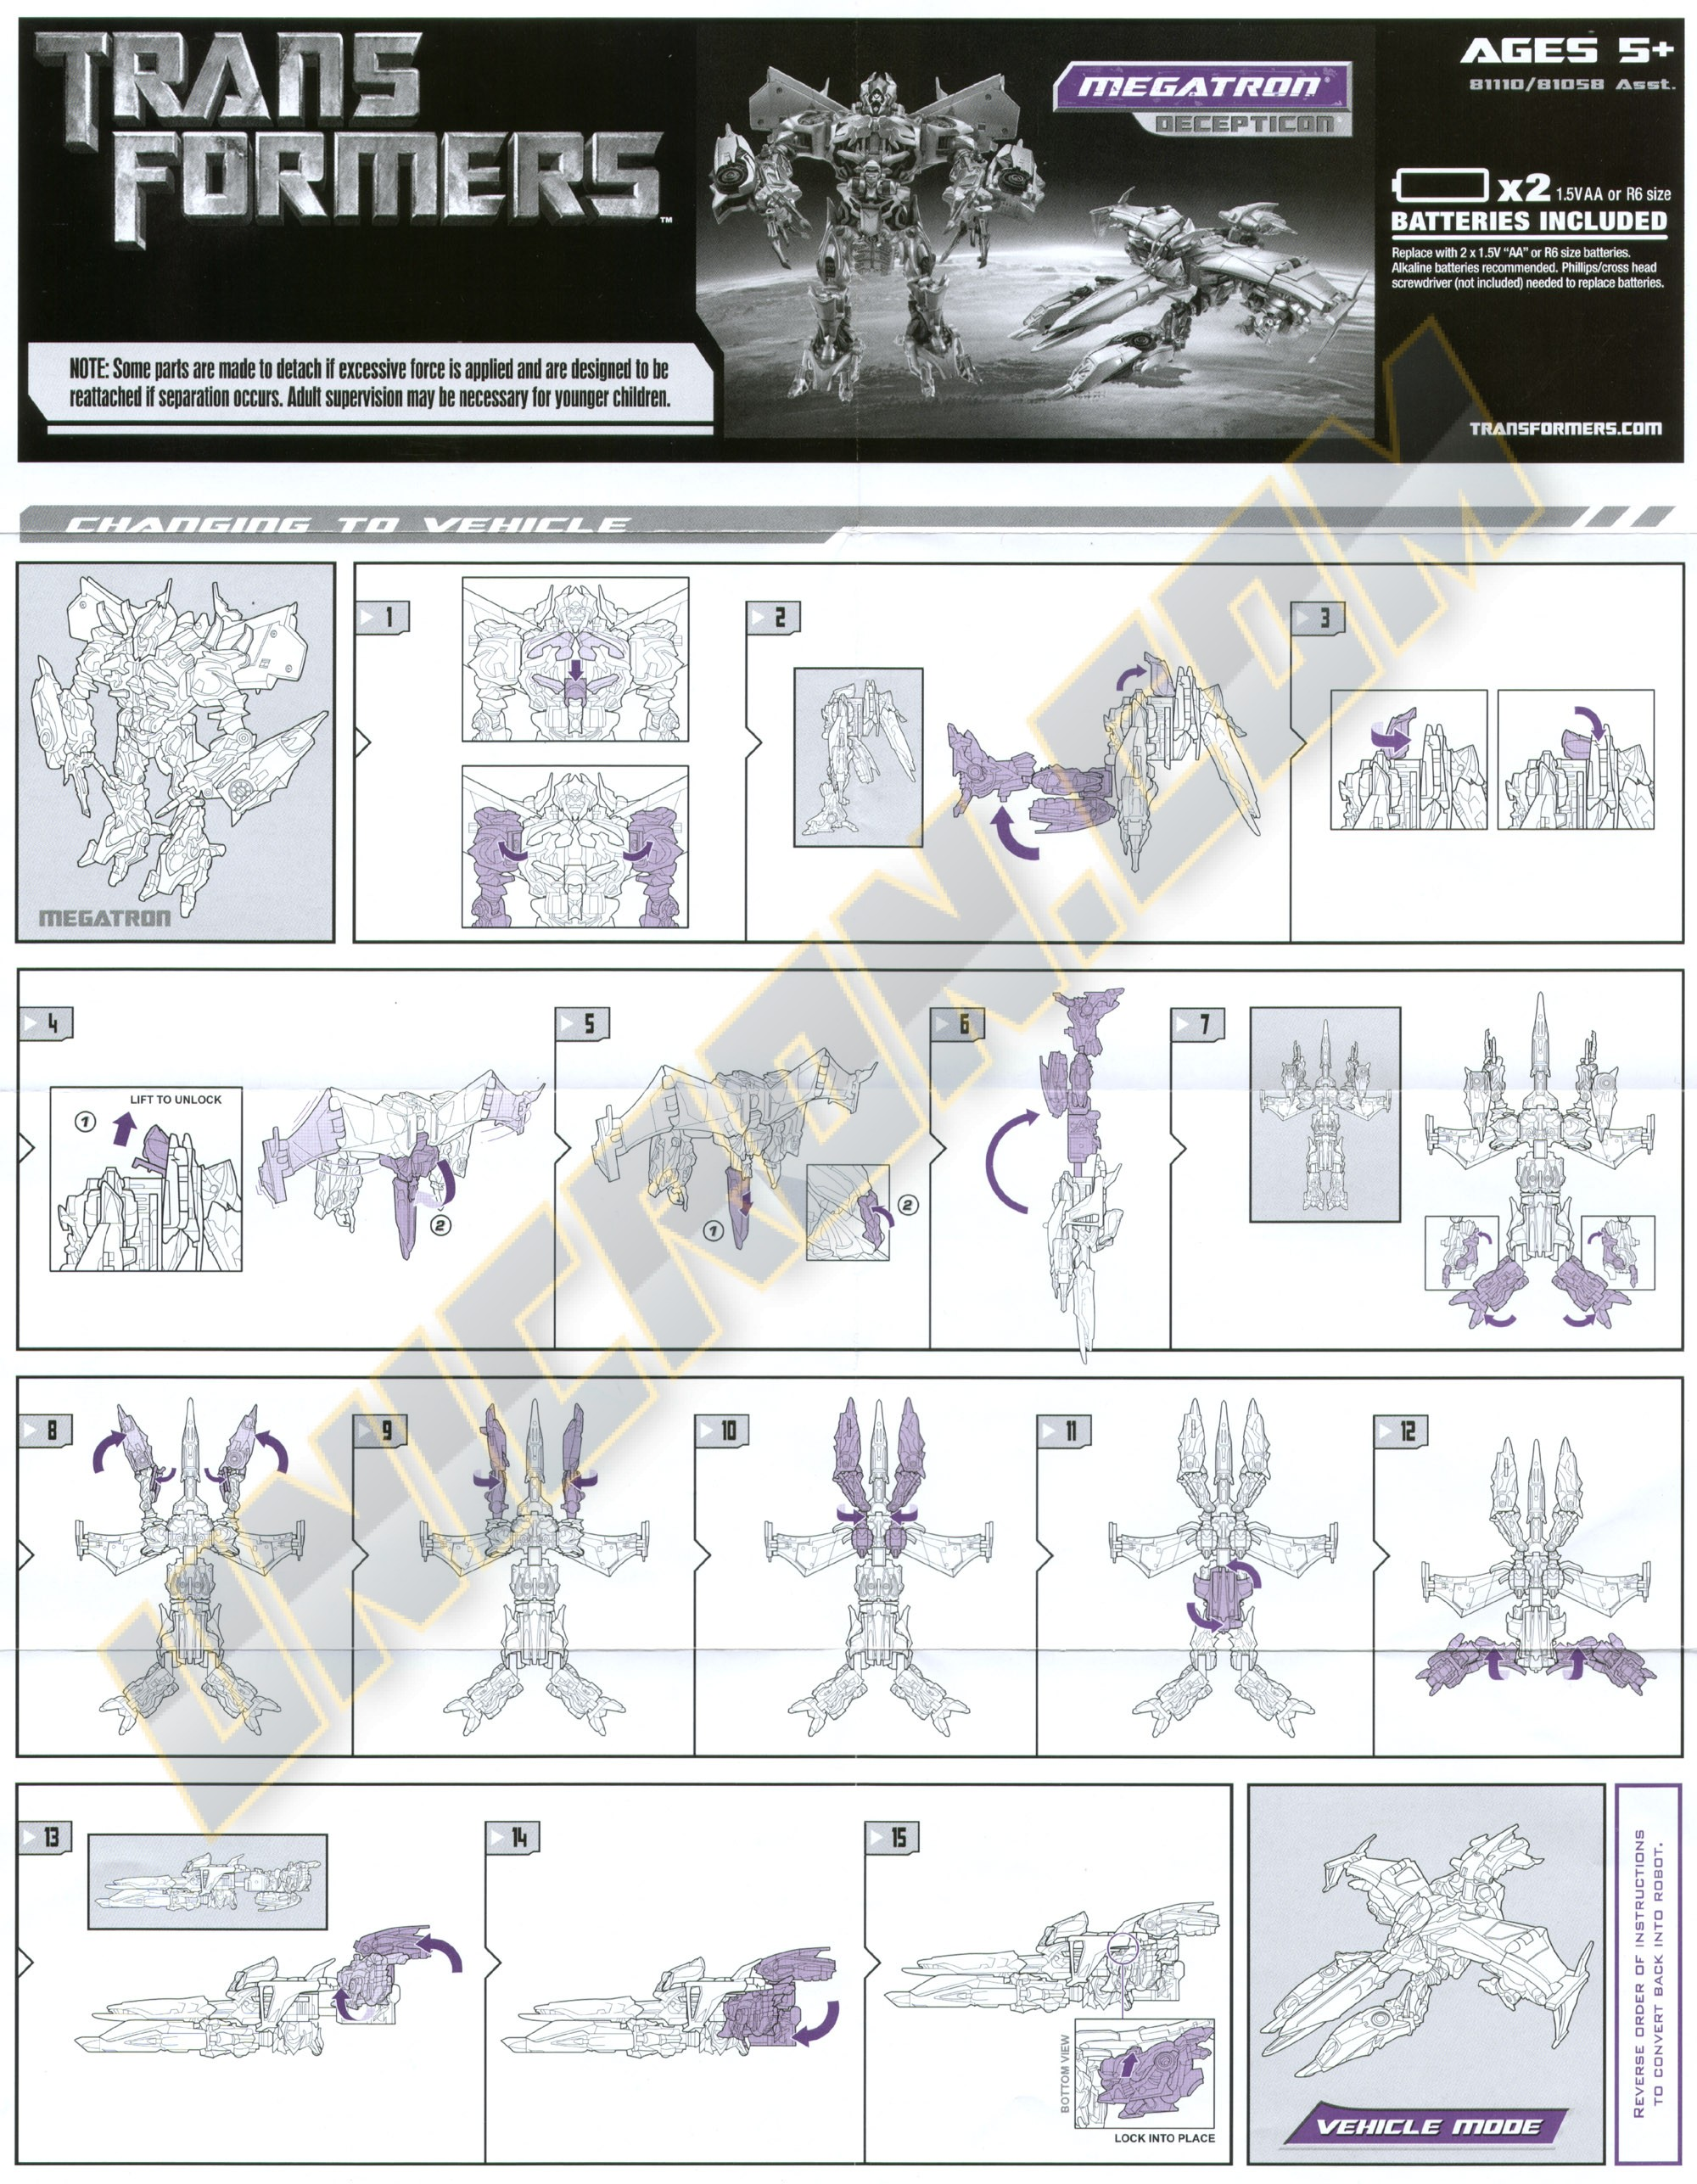 Transformers (movie) megatron transformers instructions database.